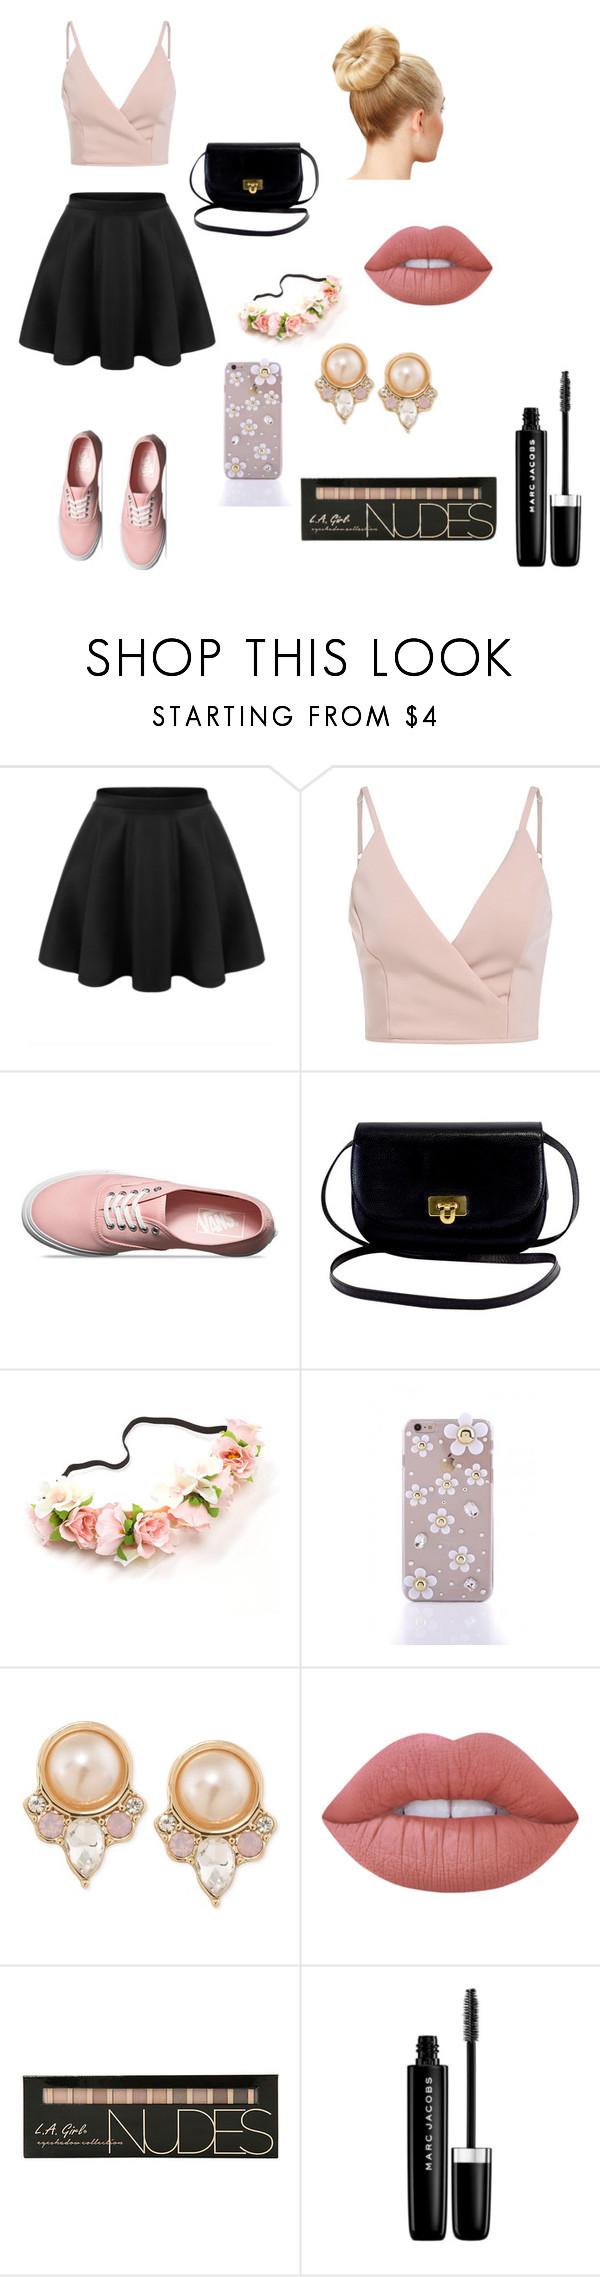 """""""Tenue 3"""" by louisepons ❤ liked on Polyvore featuring Vans, Carolee, Lime Crime and Marc Jacobs"""